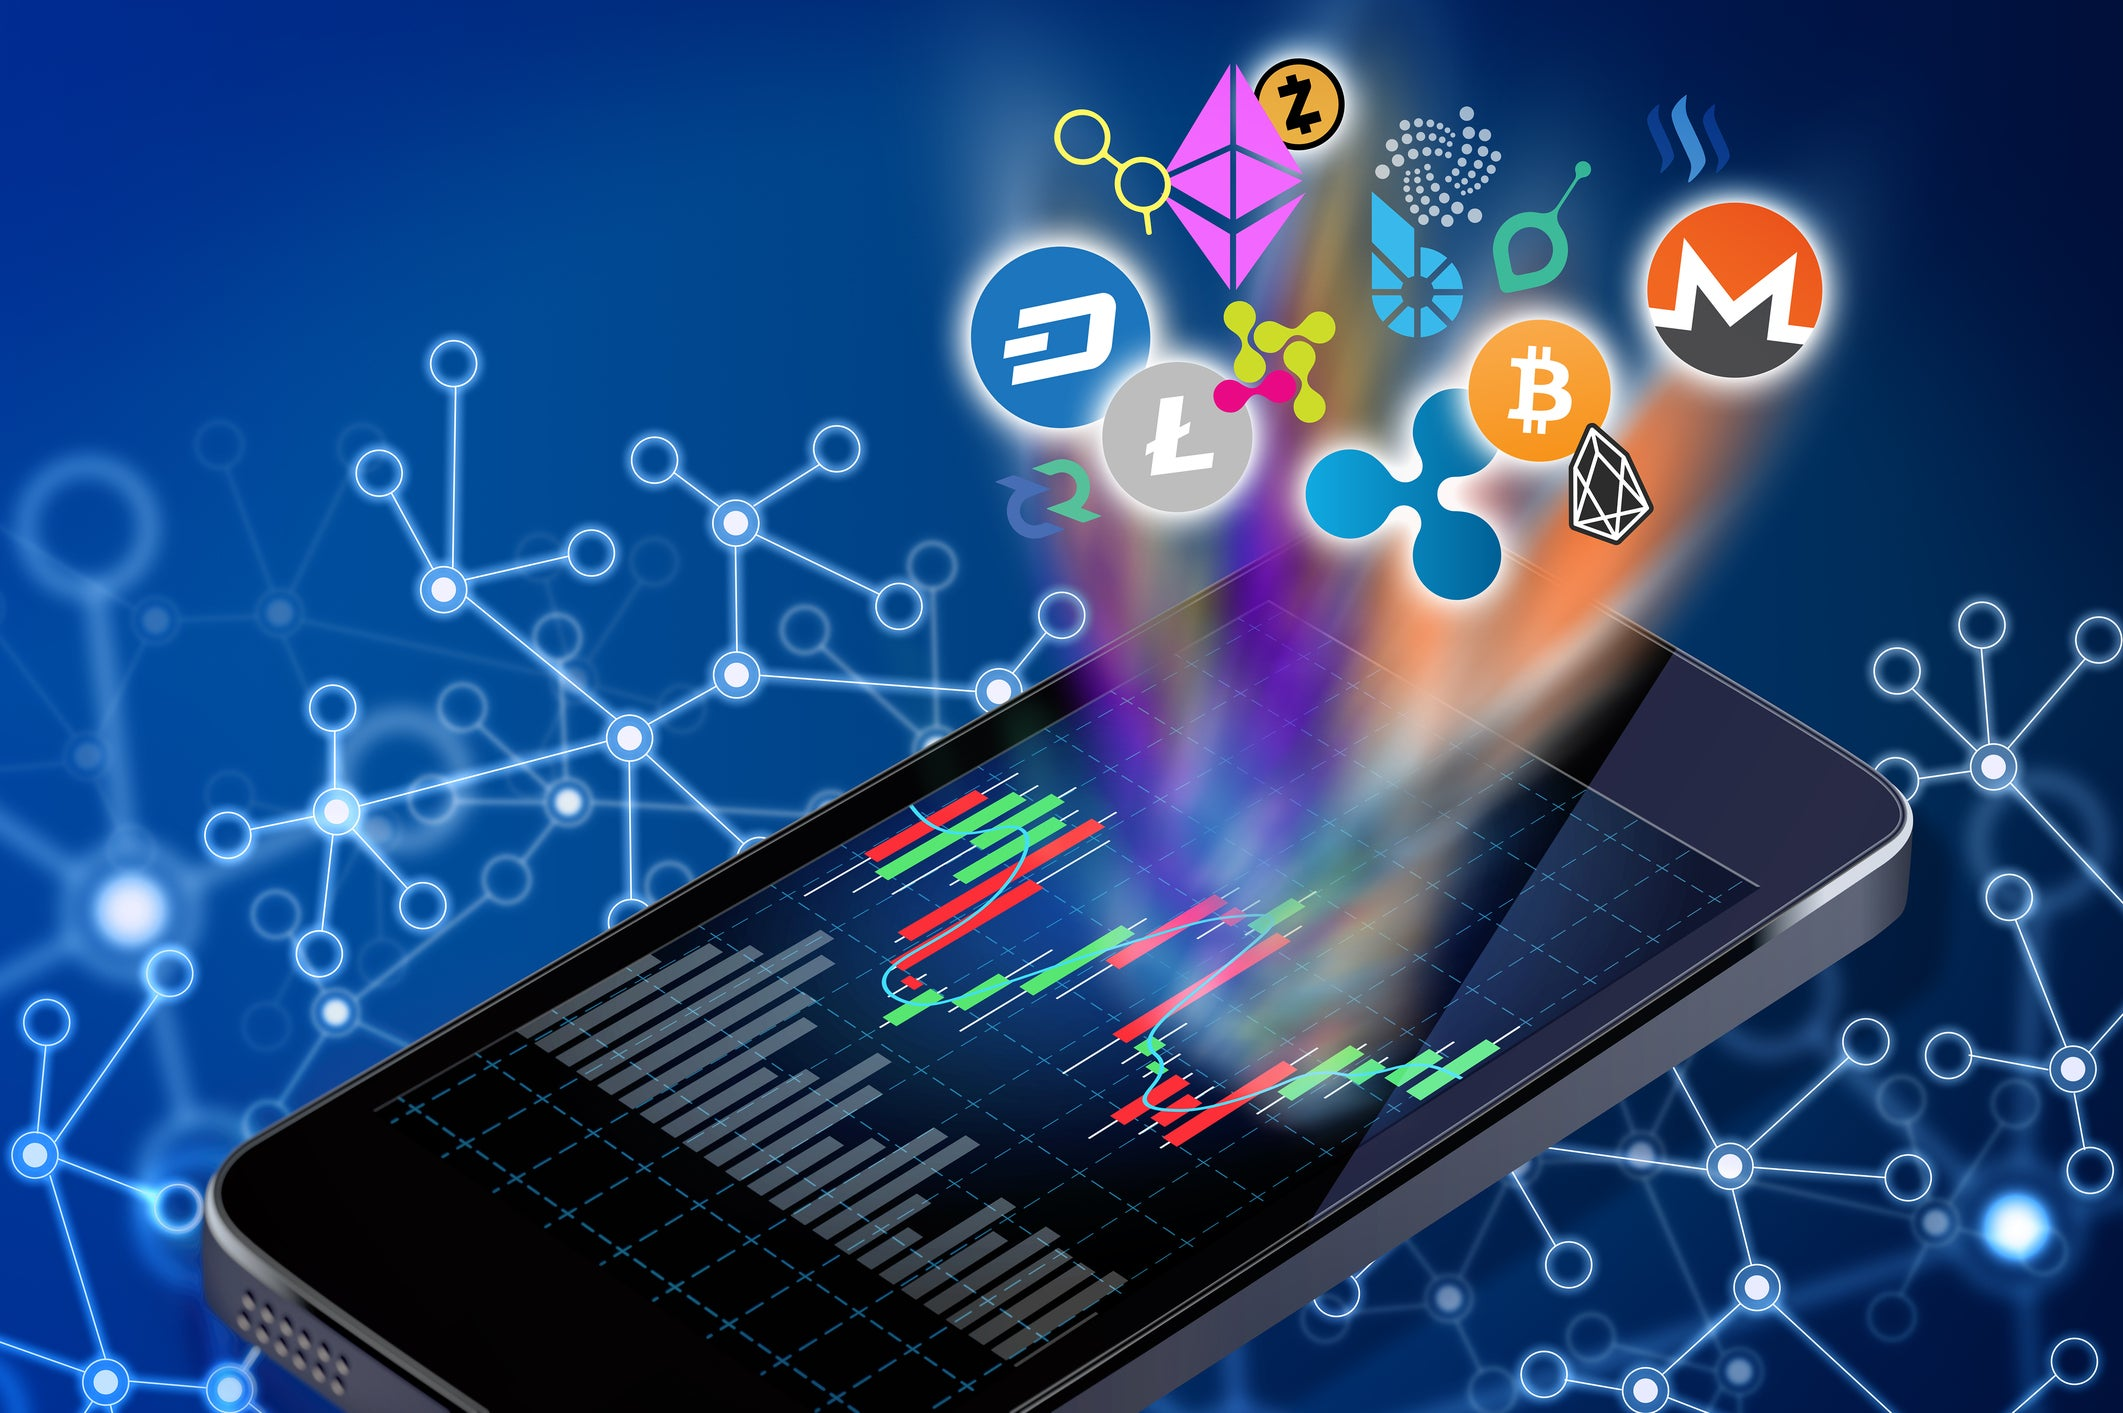 Why Cryptocurrency Stocks Like Canaan, The9, and Riot Blockchain All Skyrocketed Today